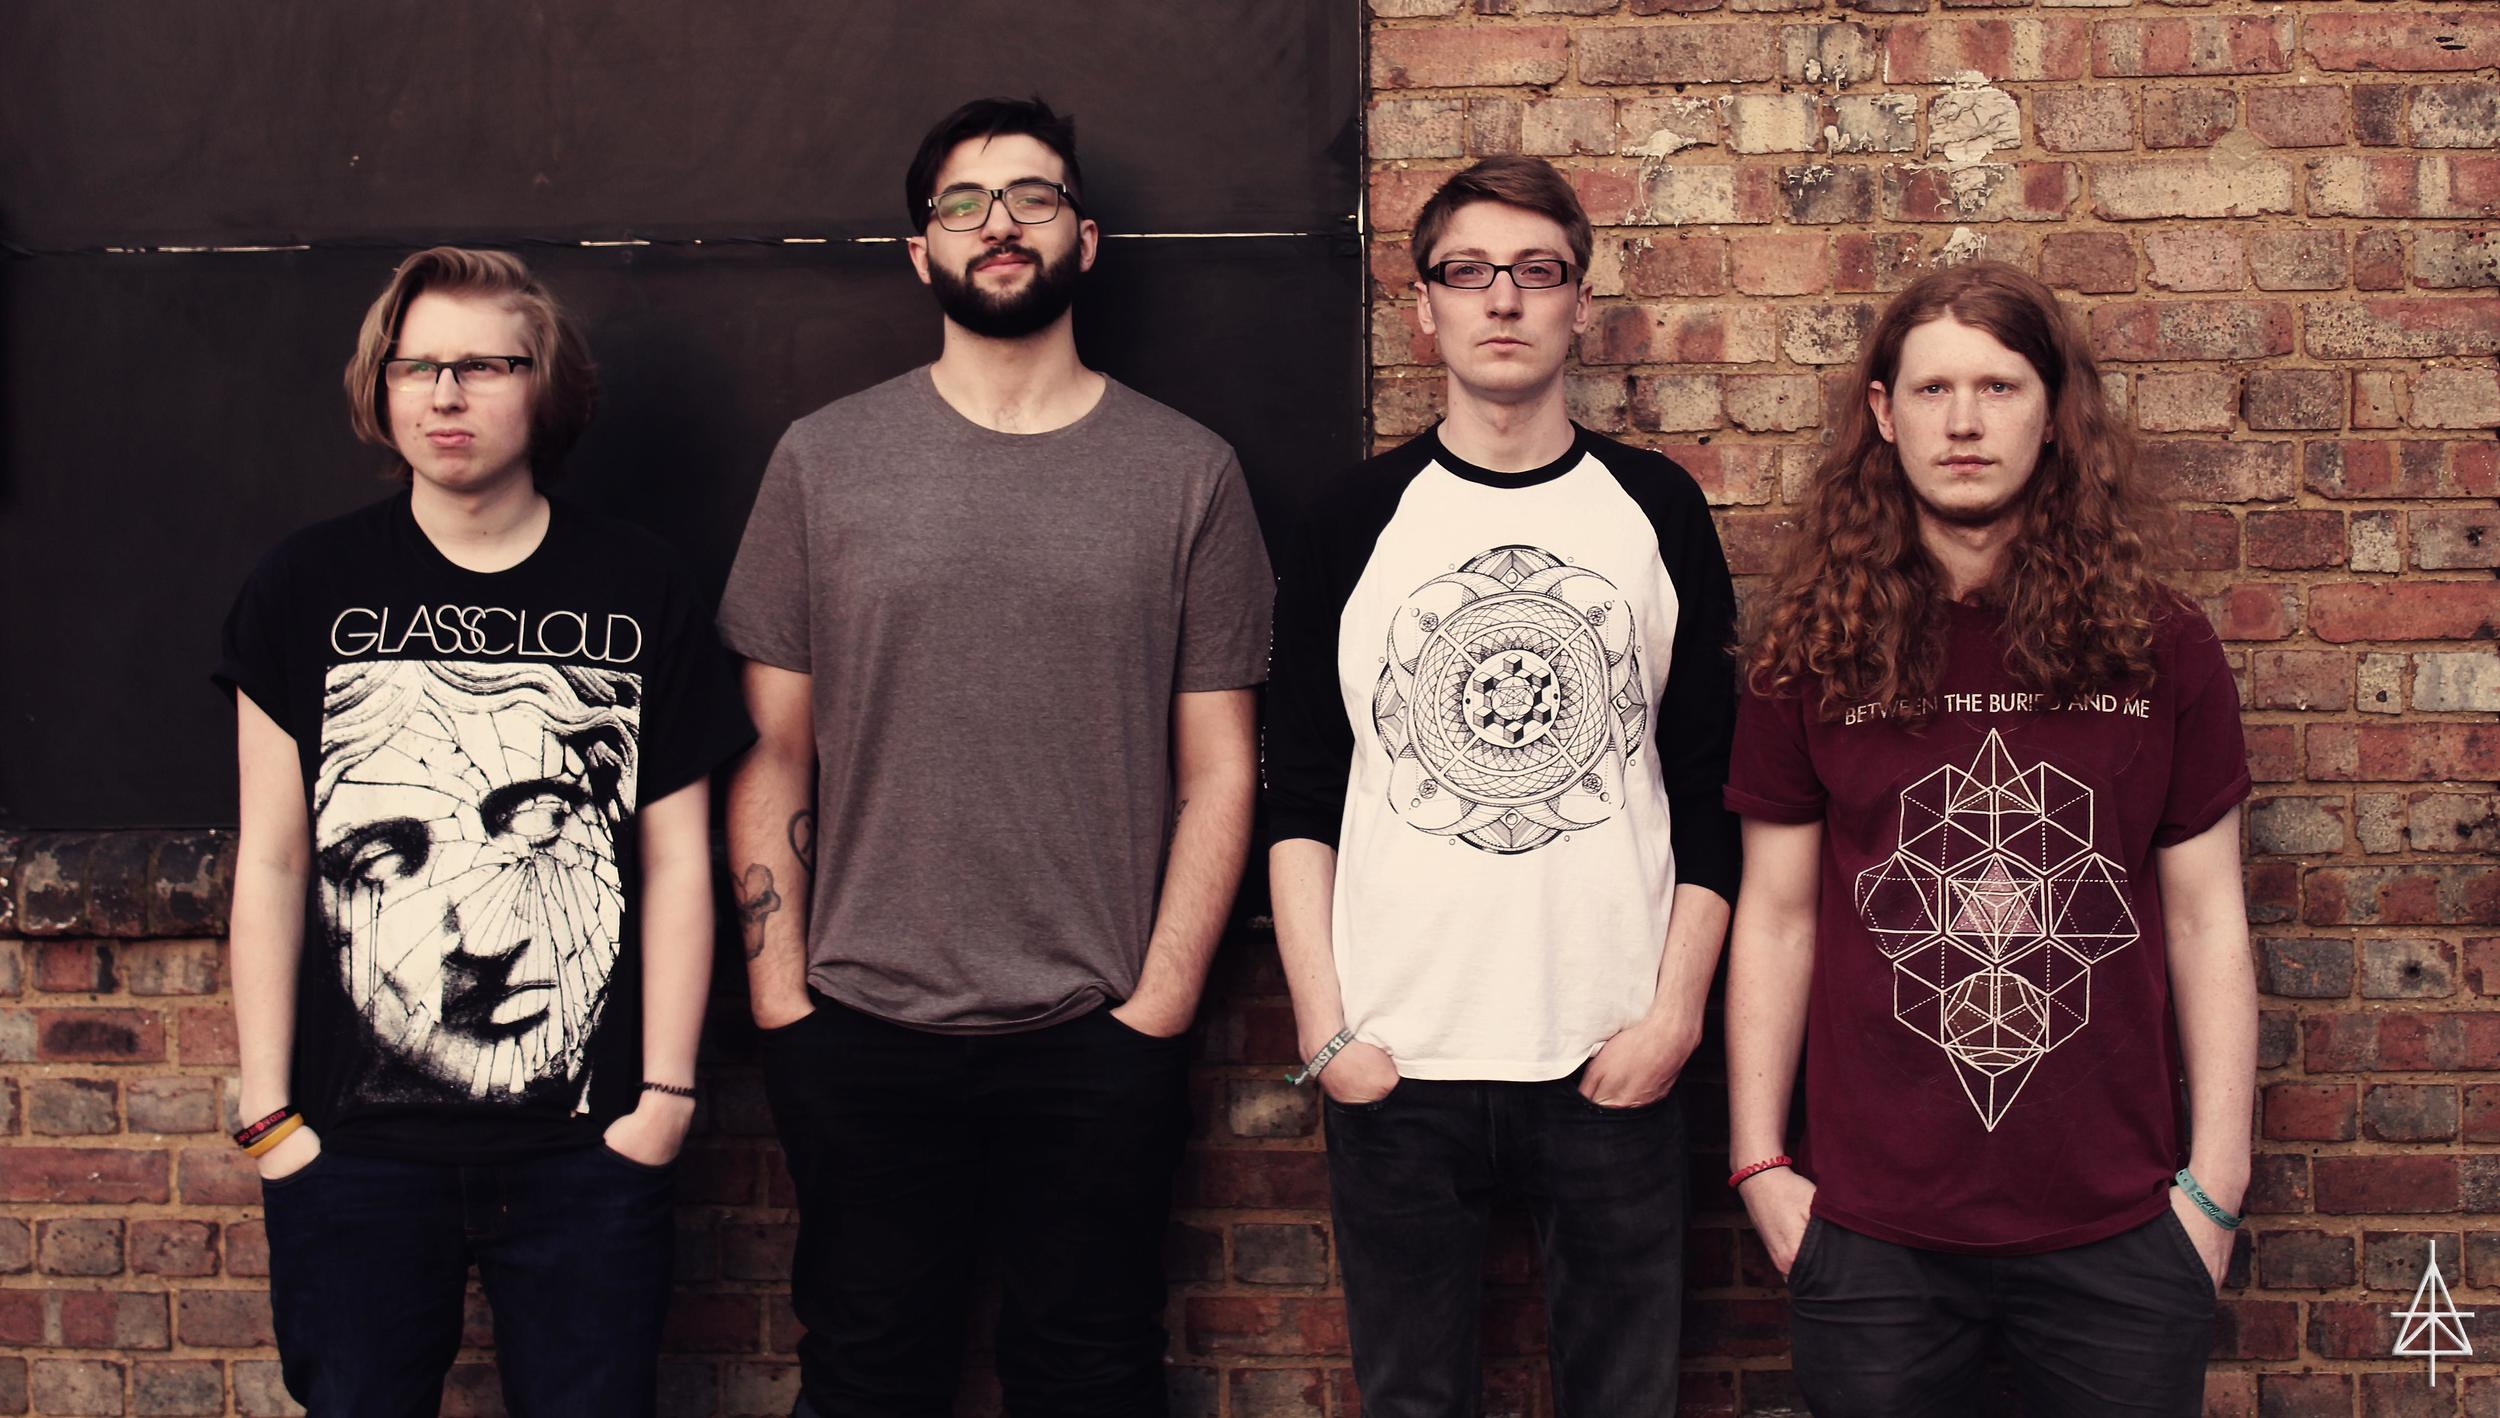 Young British tech-metallers   Fraktions   are delighted to announce their upcoming EP,   Anguish,  out August 12.    To celebrate the news, the band have released a new video for 'Freedom of the Conscious Mind'. First premiered via   The Circle Pit  , you can watch the video here:   https://www.youtube.com/watch?v=QoMCDlmkQGc    Pre-order the EP here:   https://fraktions.bandcamp.com/    Anguish   is a highly compelling new release from a band equally influenced by classical music, the jazz noodlings of   Tigran Hamasyan   and the progressive metal of   TesseracT   and   The Contortionist;     Fraktions   are an exciting addition to the burgeoning second wave British tech-metal scene.       Having played alongside   Drewsif Stalin  ,   No Consequence   (whose frontman features on the EP),   Kadinja  , and   Bleed from Within  ,   Anguish   is a irresistible new take on technical metal. Inspired by songwriter and pianist Joel Pinder's classical leanings, the EP presents an impressively mature approach from such a young band.        A concept EP,   Anguish   is about the final chapter of a schizophrenic woman's life. The protagonist suffers from aural hallucinations as a result, a condition translated musically into the EP's frantic and unpredictable style, veering between piano-led dissonance and guitar-led technical off-kilter riffing. The multiple sound-worlds of the EP mark   Fraktions   out as a band to take notice of – a young group with a promising future ahead of them.    The EP was recorded and mixed by Daniel Reid of   No Consequence   and mastered by Acle Kahney of   TesseracT.    Catch the band's   album launch show at Surya, London, on August 14th.